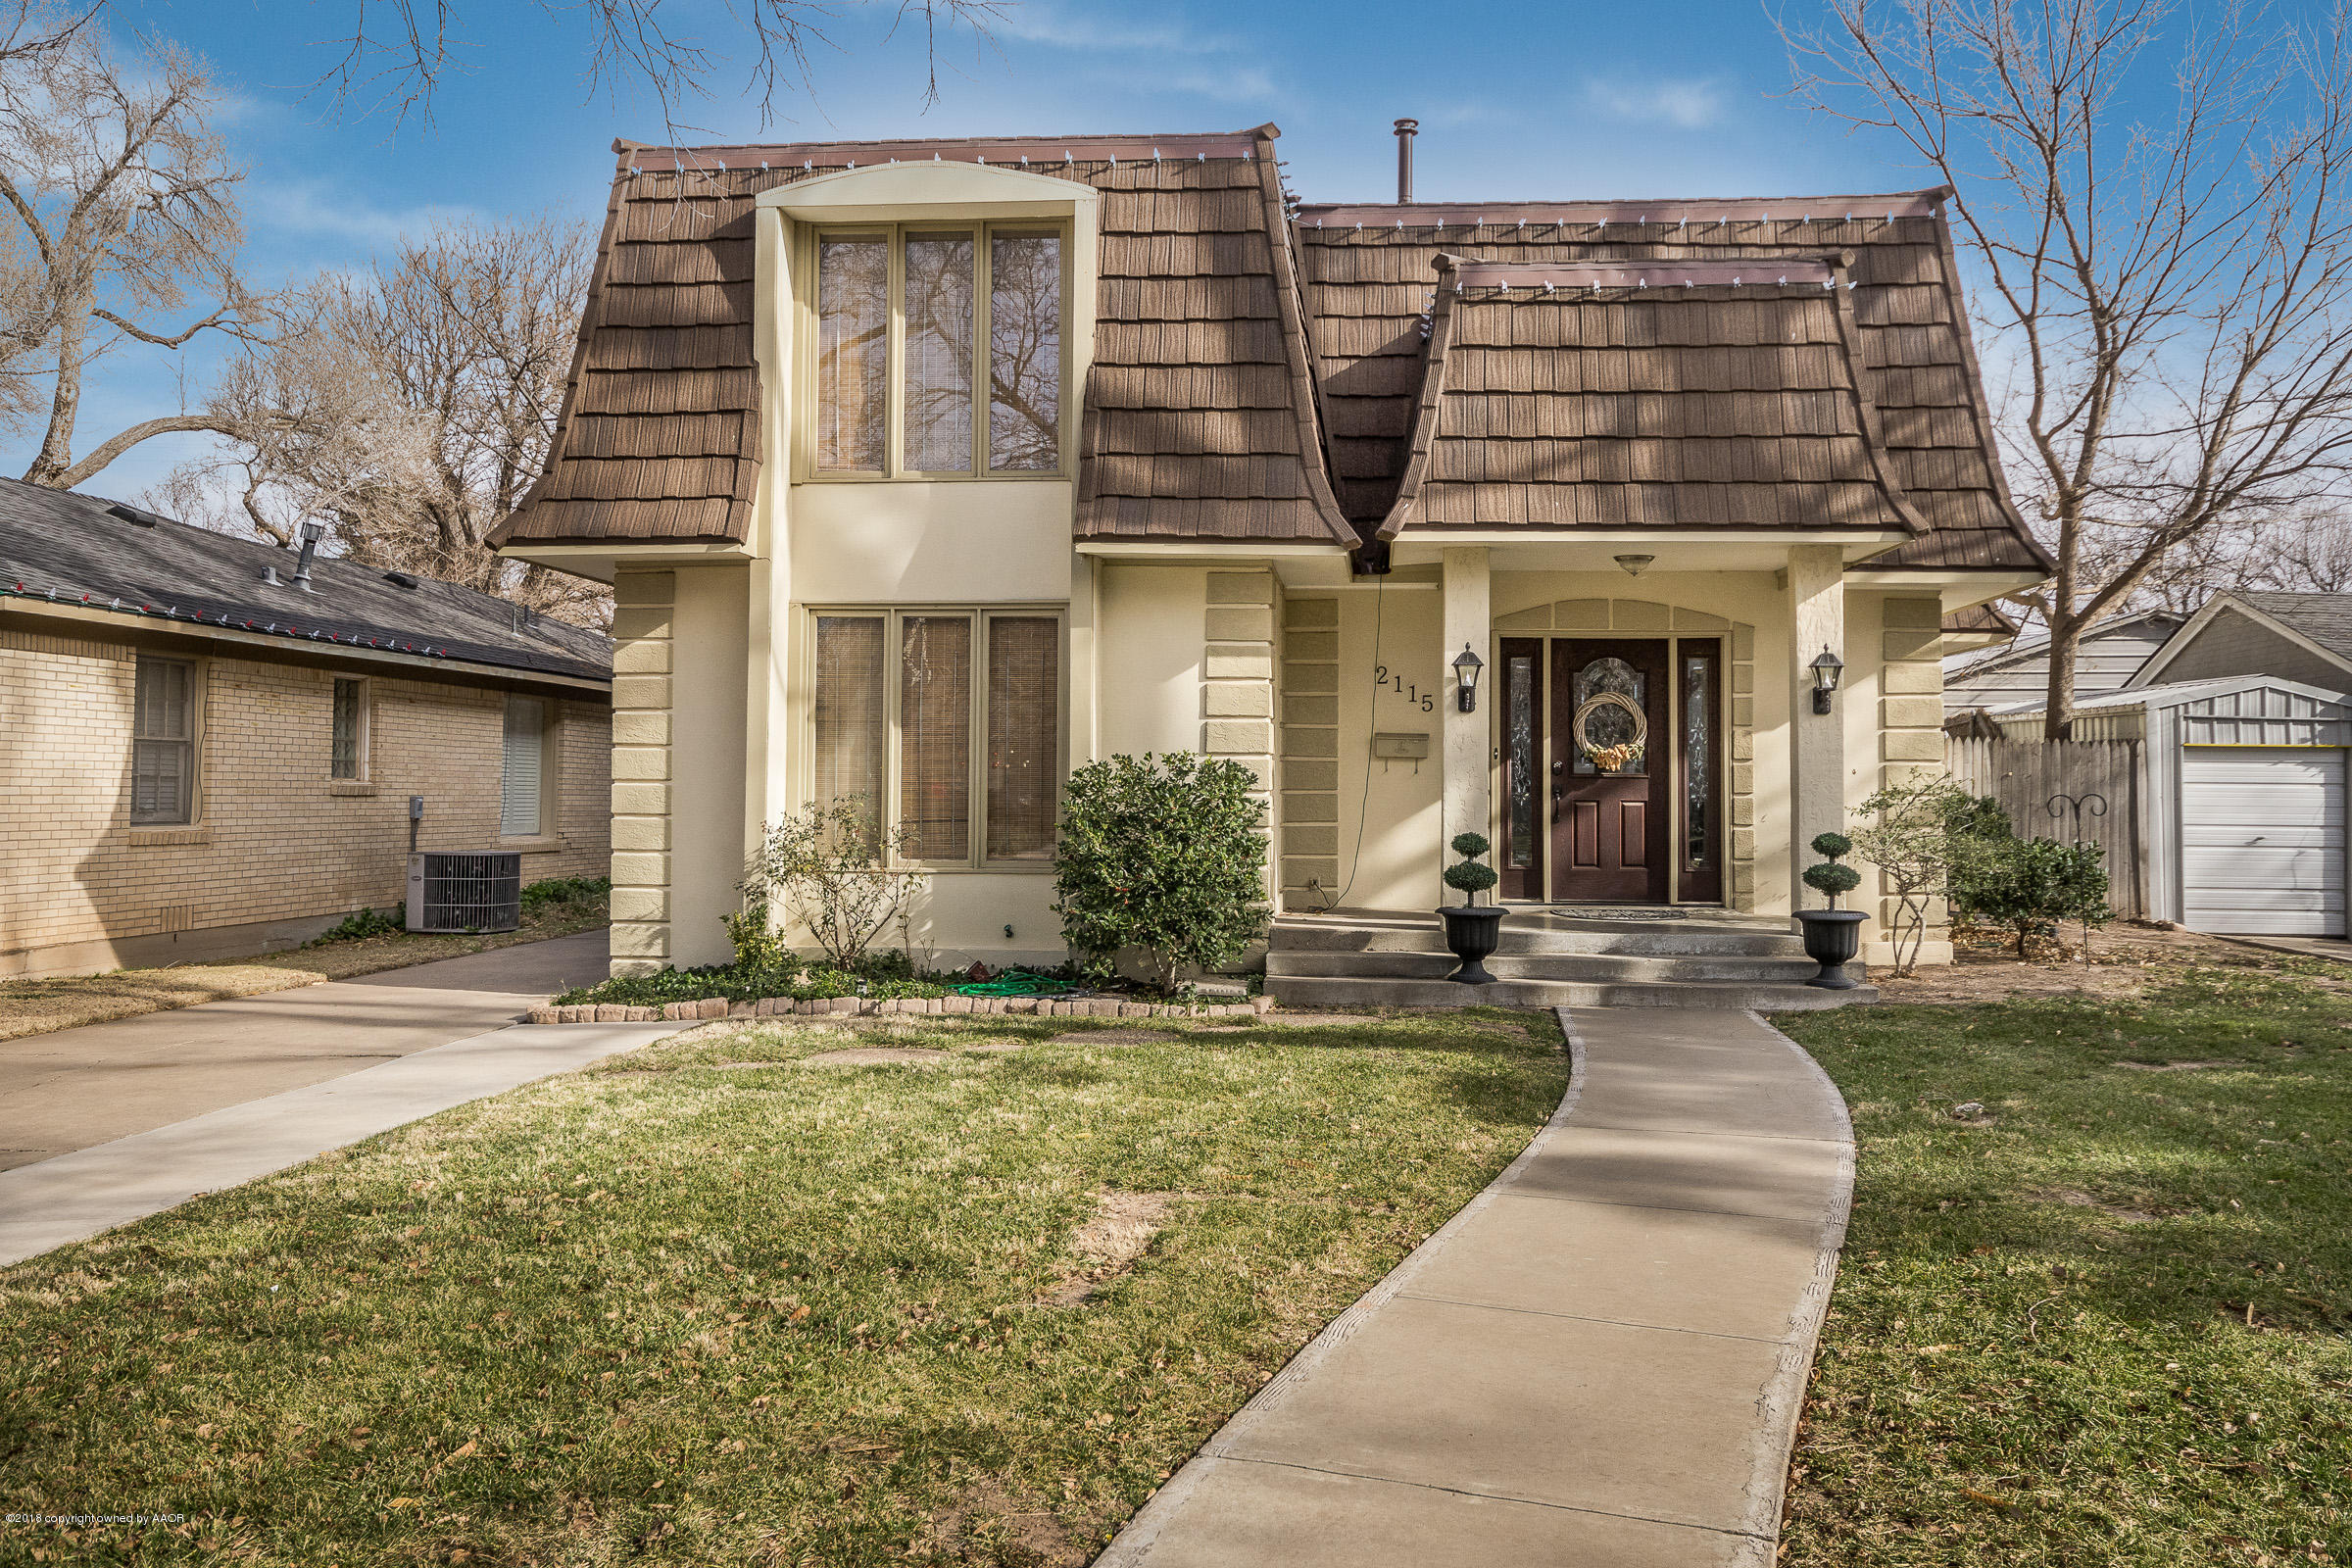 One of Amarillo 4 Bedroom Homes for Sale at 2115 HUGHES ST S.